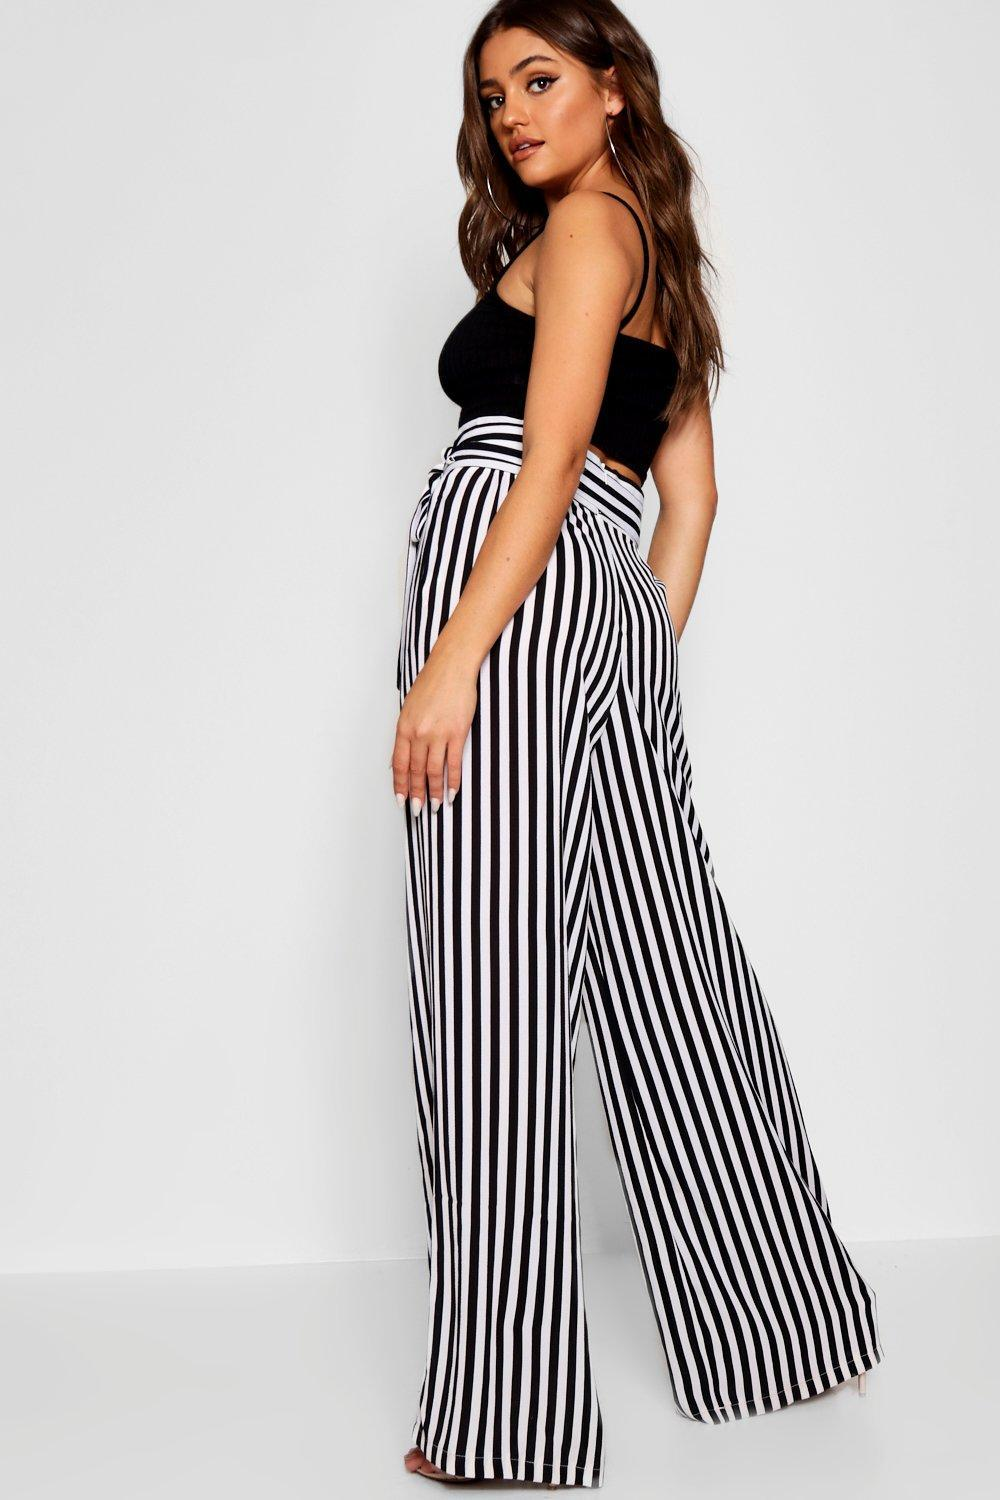 fac79a405b68 Boohoo - Black Tie Waist Striped Wide Leg Trousers - Lyst. View fullscreen